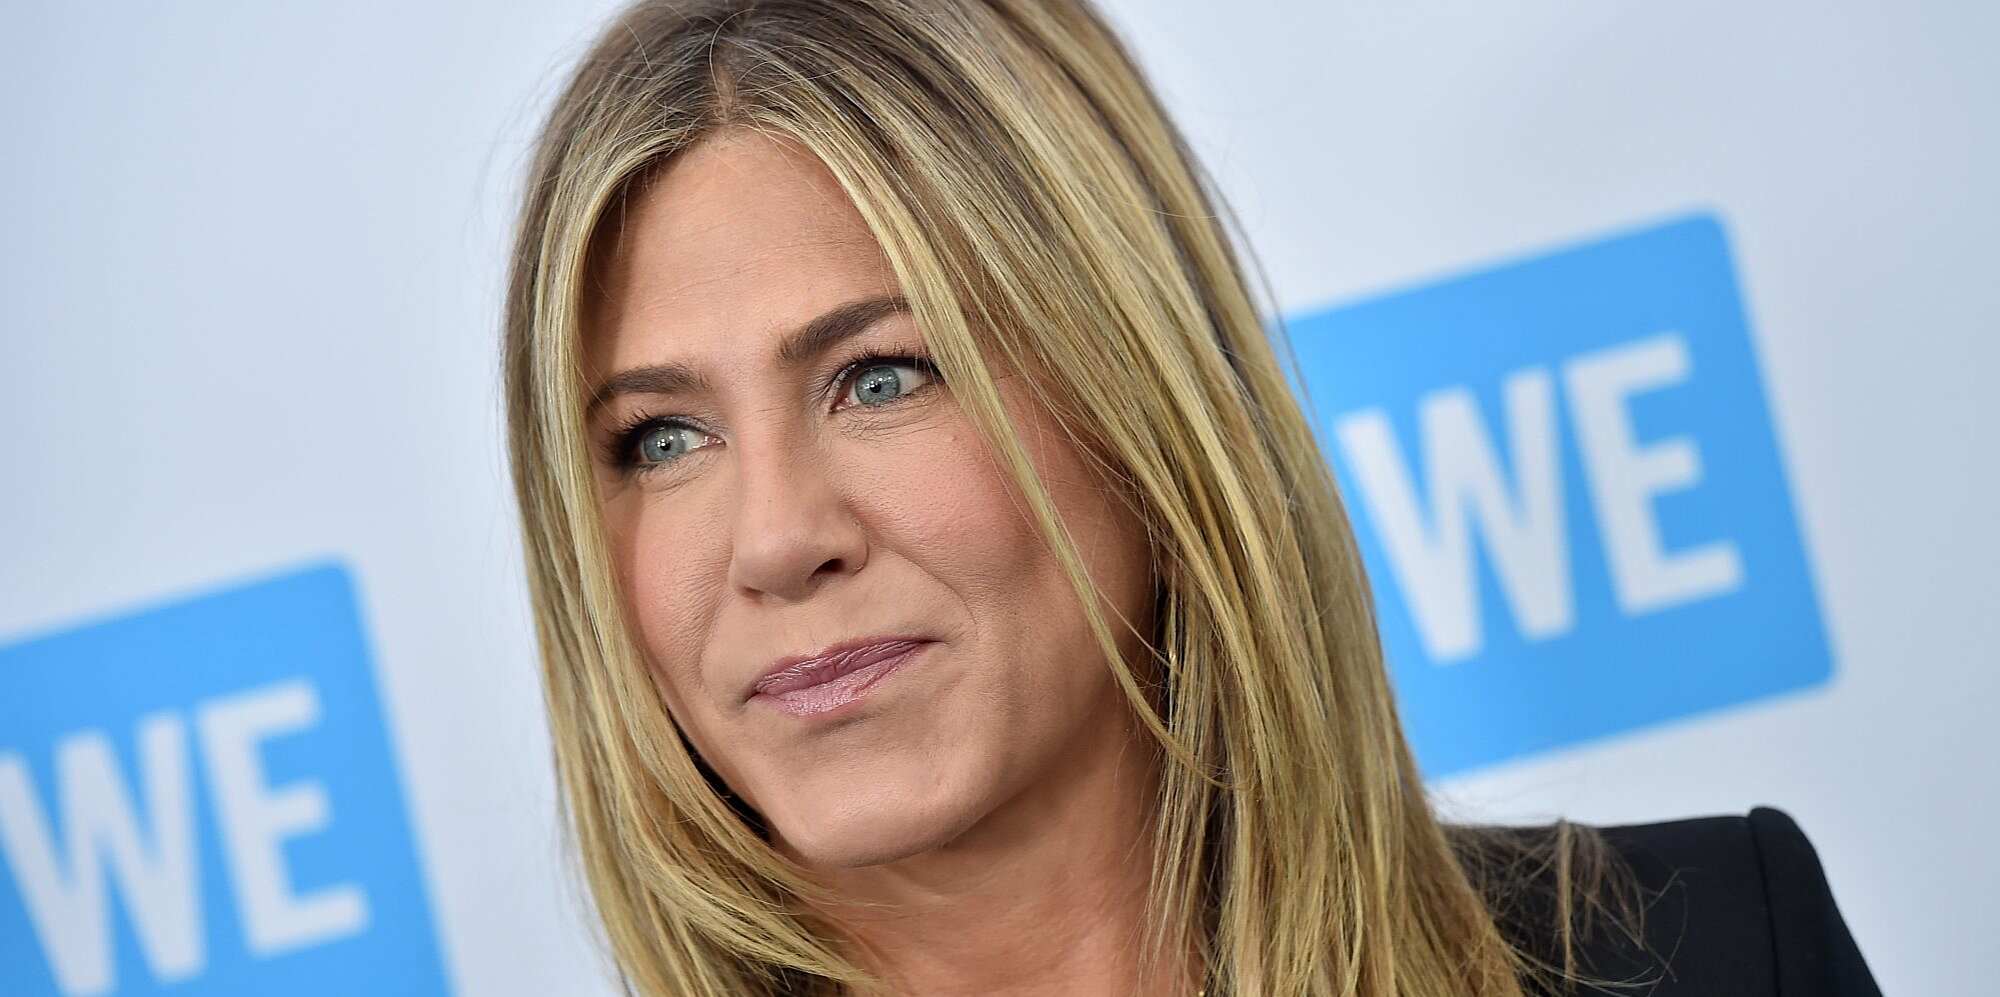 Jennifer Aniston Candidly Opened Up About Whether or Not She'll Ever Get Married Again